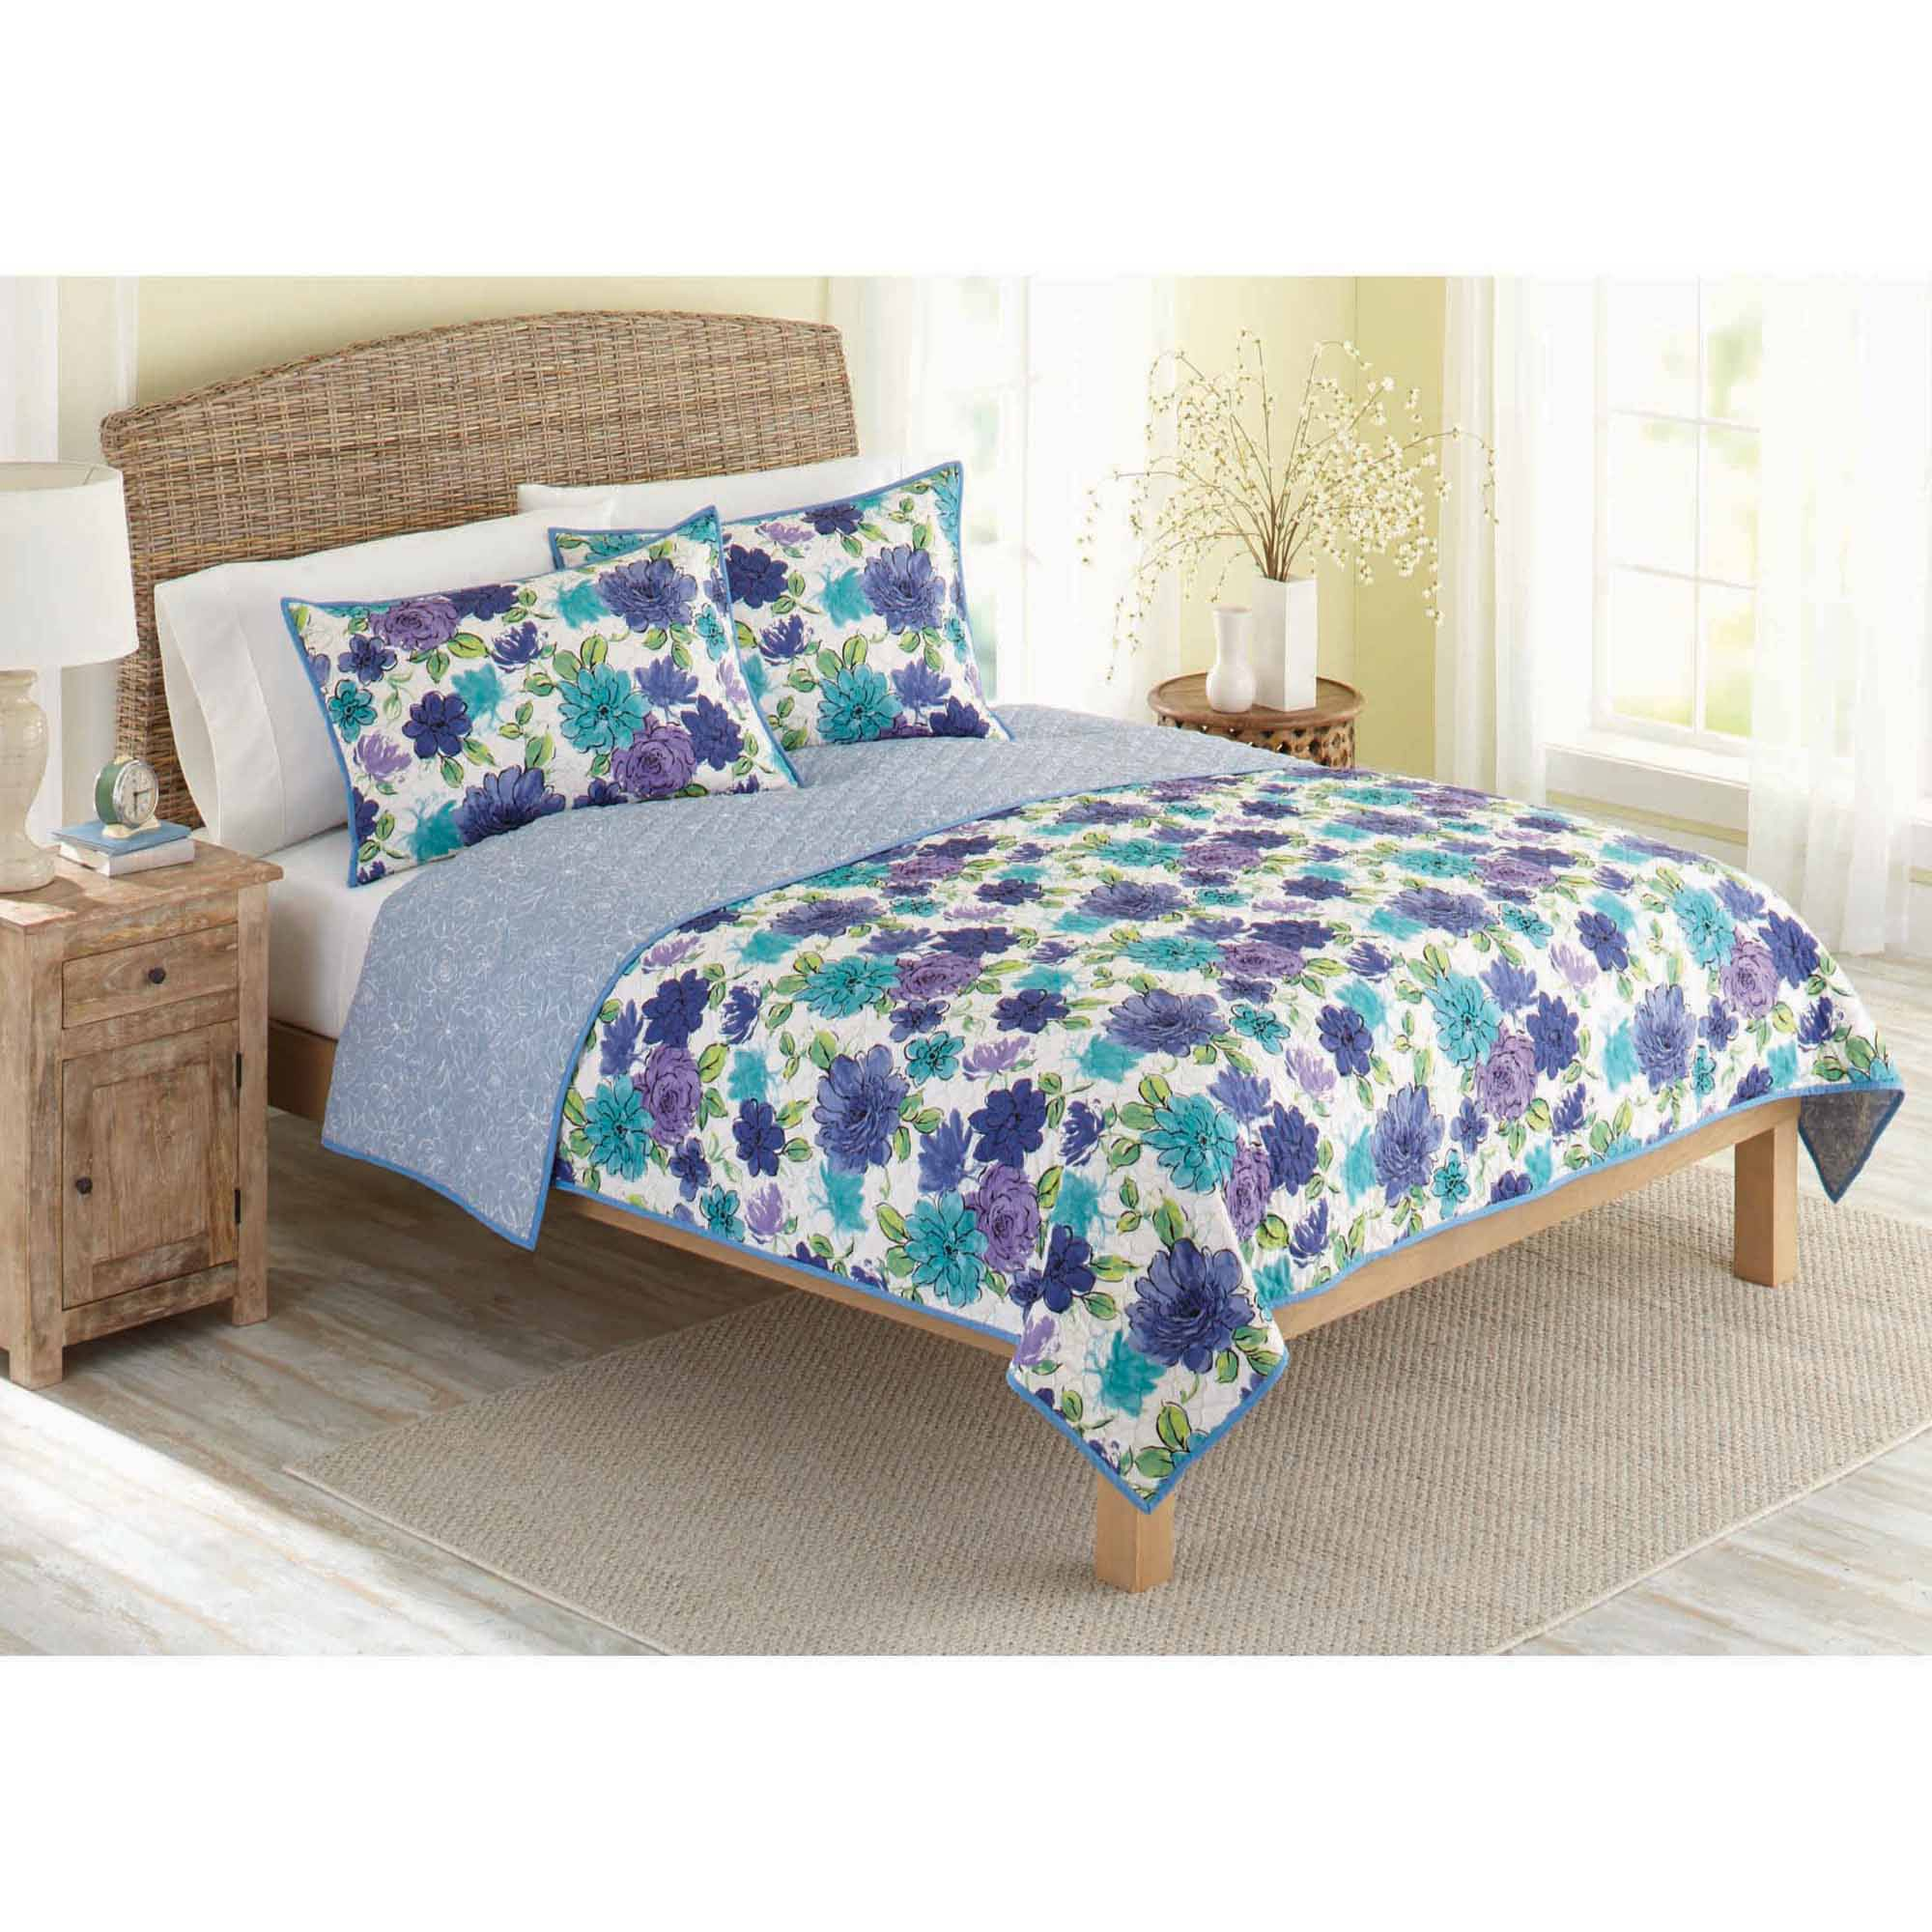 Better Homes And Gardens Quilt Collection, Watercolor Floral Price